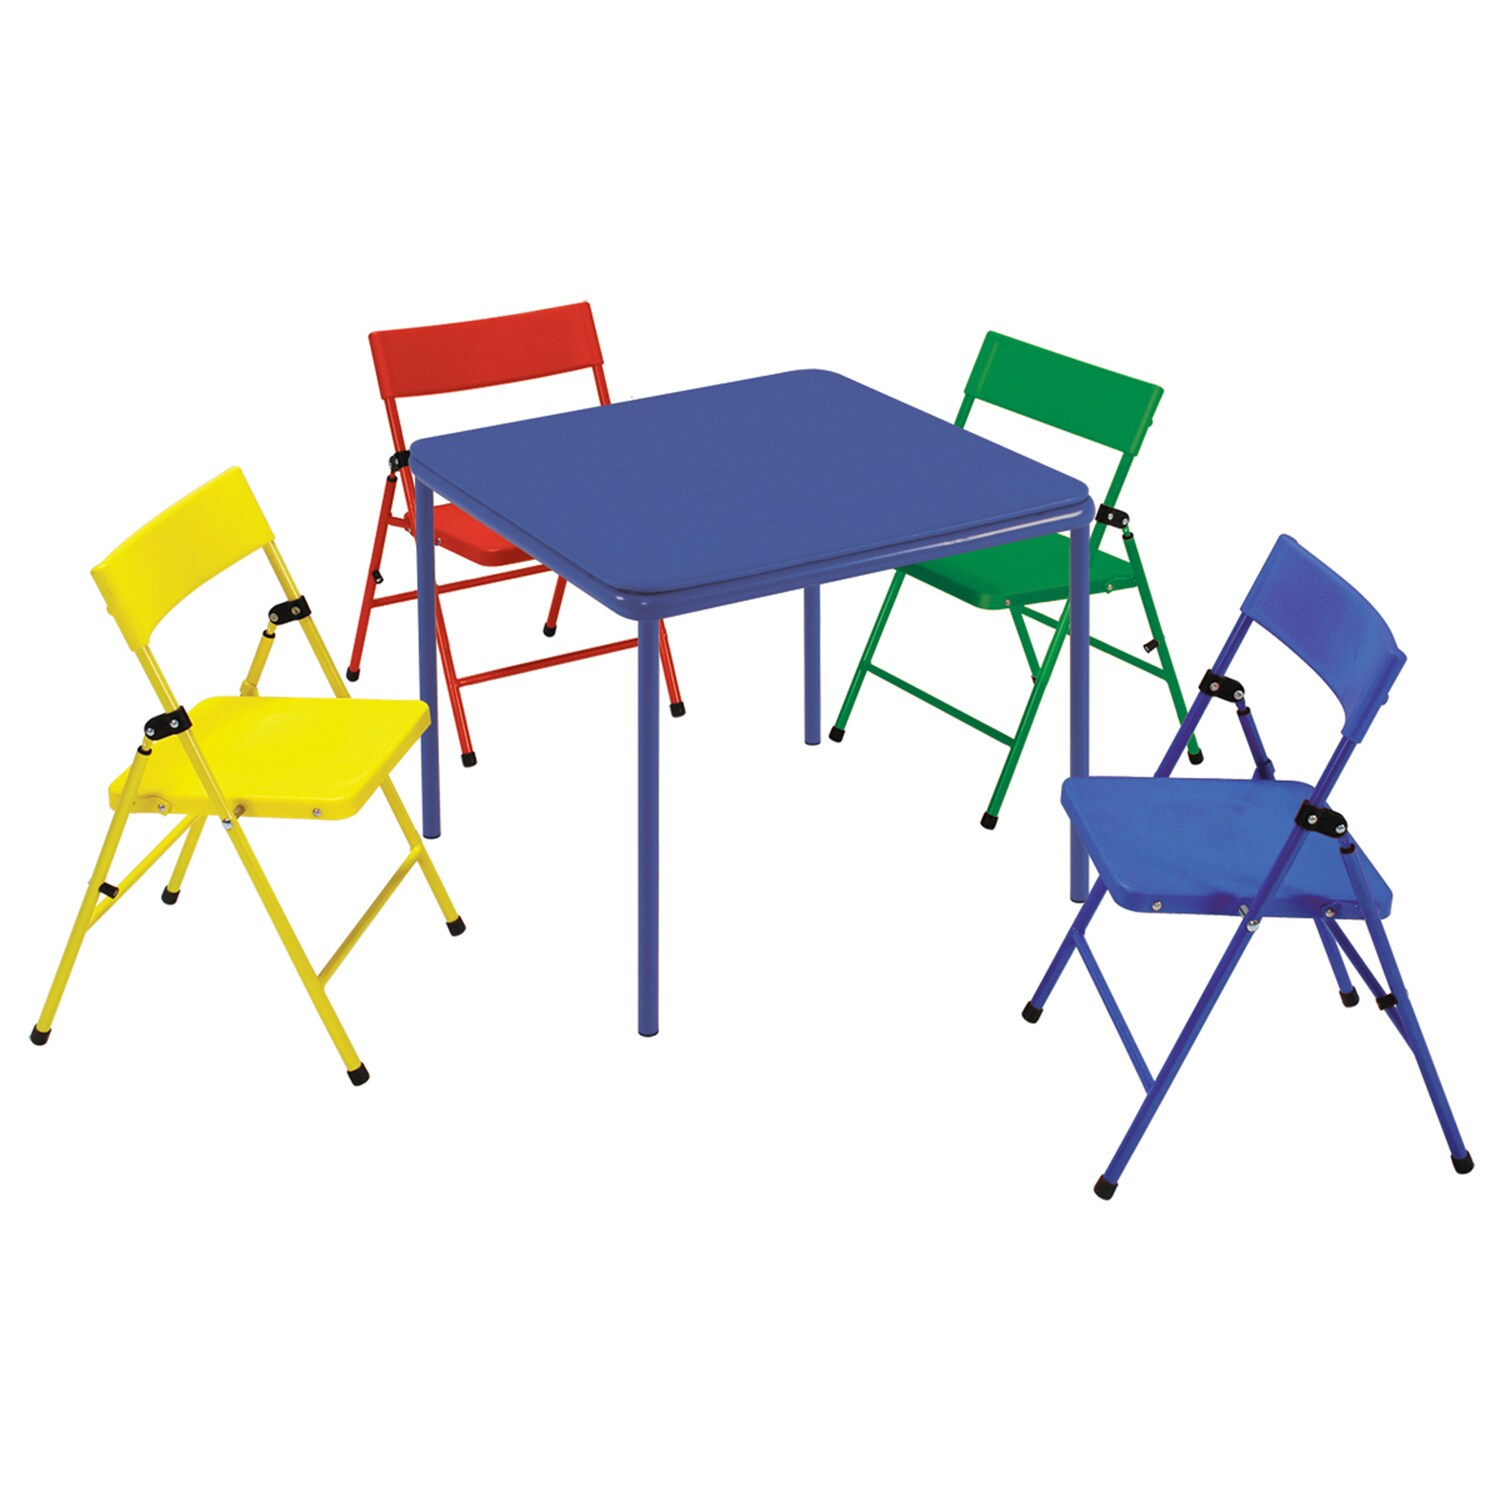 Cosco Kid s 5 piece Colored Folding Chair and Table Set Overstock™ Shop